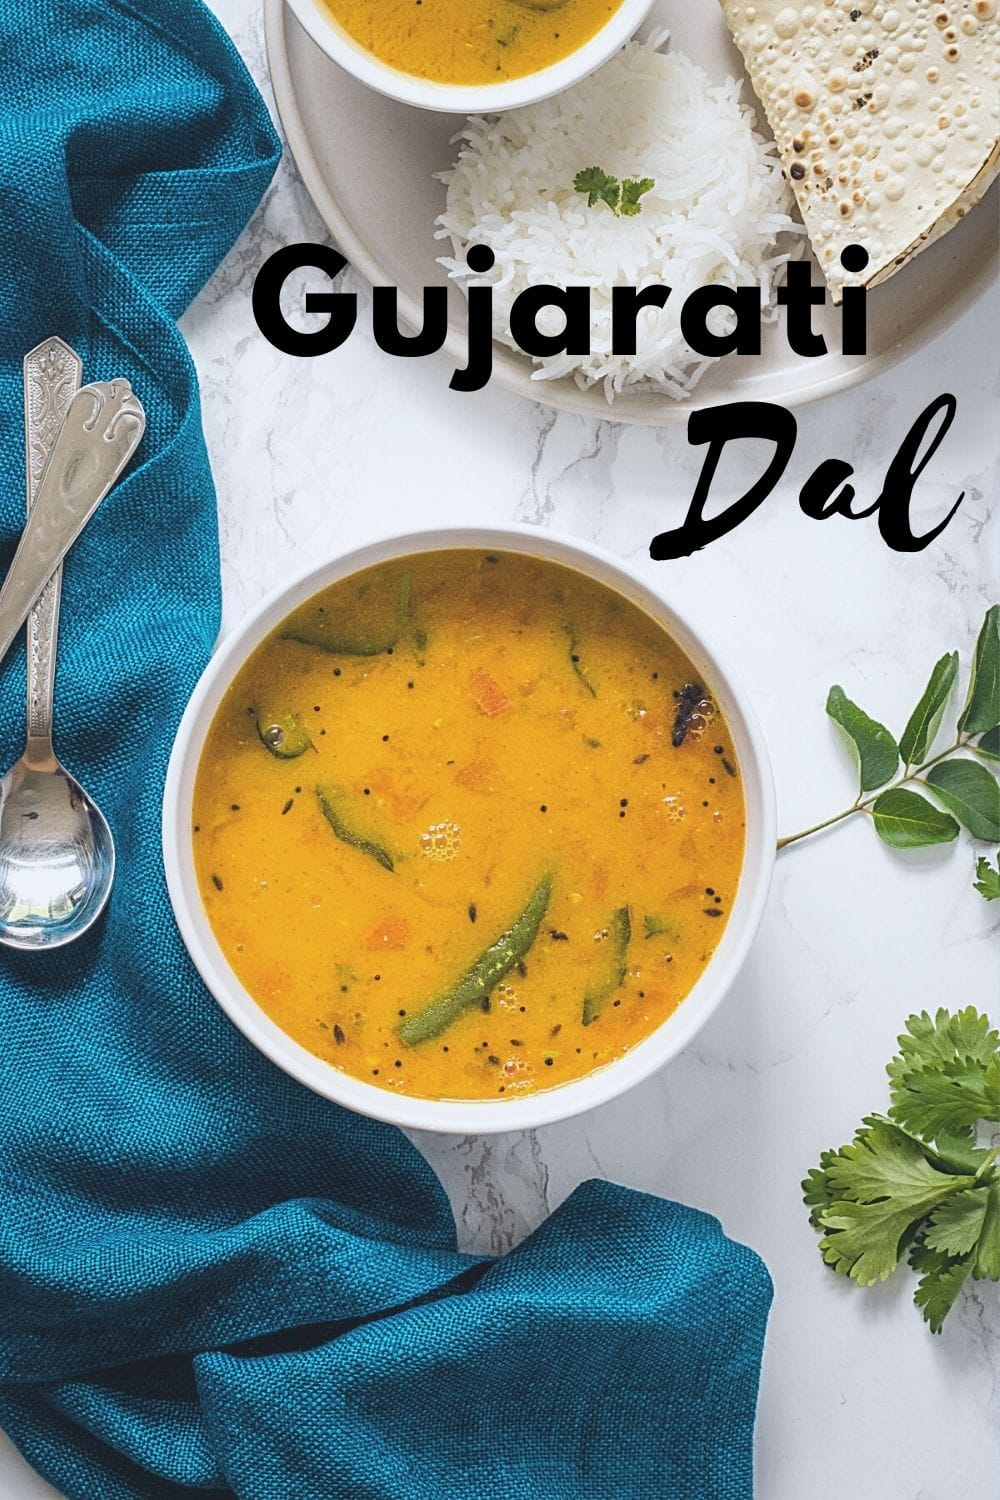 Gujarati dal in a bowl with rice and papad on side with napkin, spoons and cilantro leaves laid around the bowl